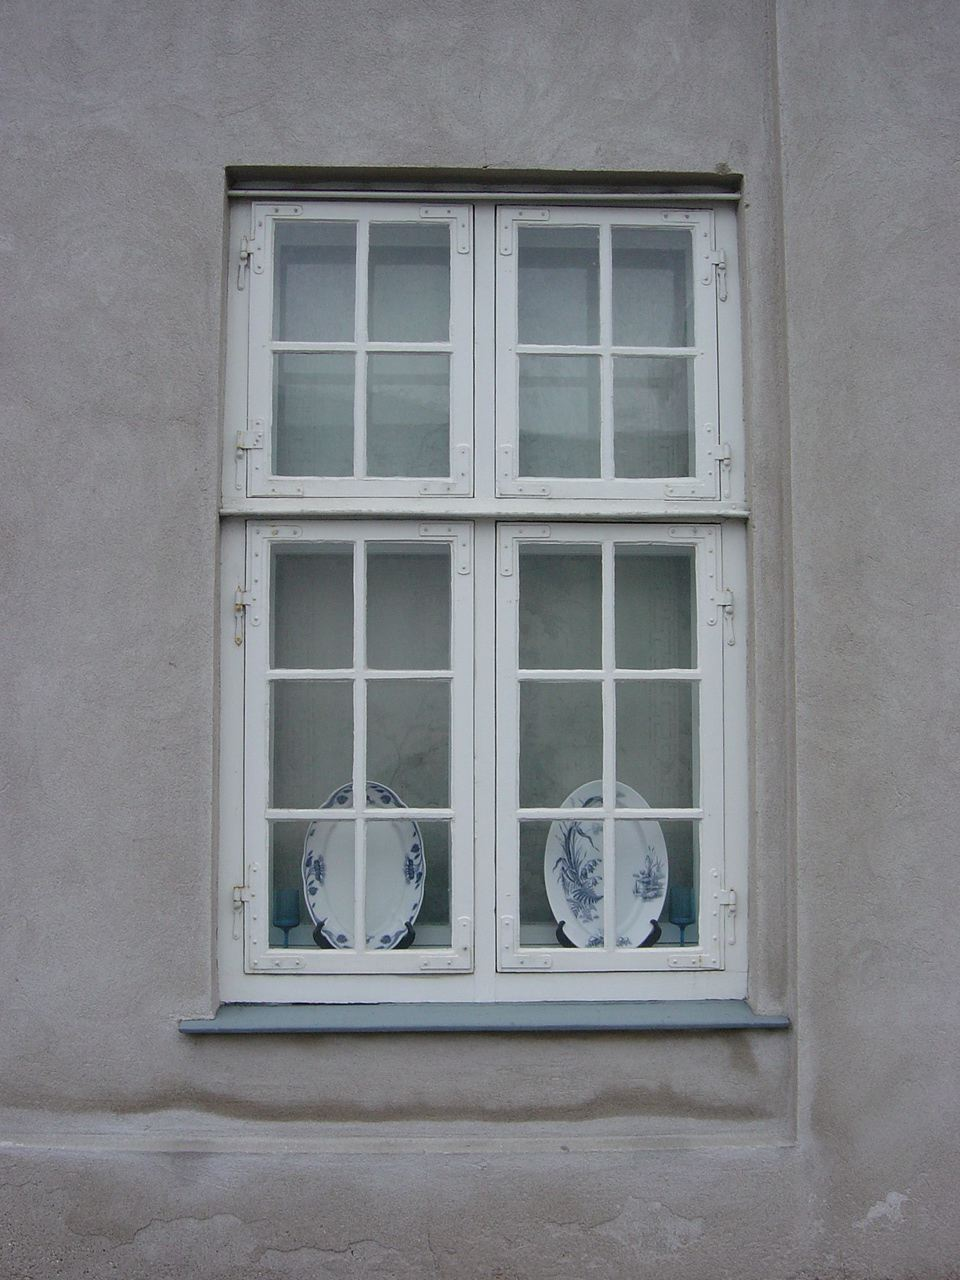 Denmark - pottery on a window sill